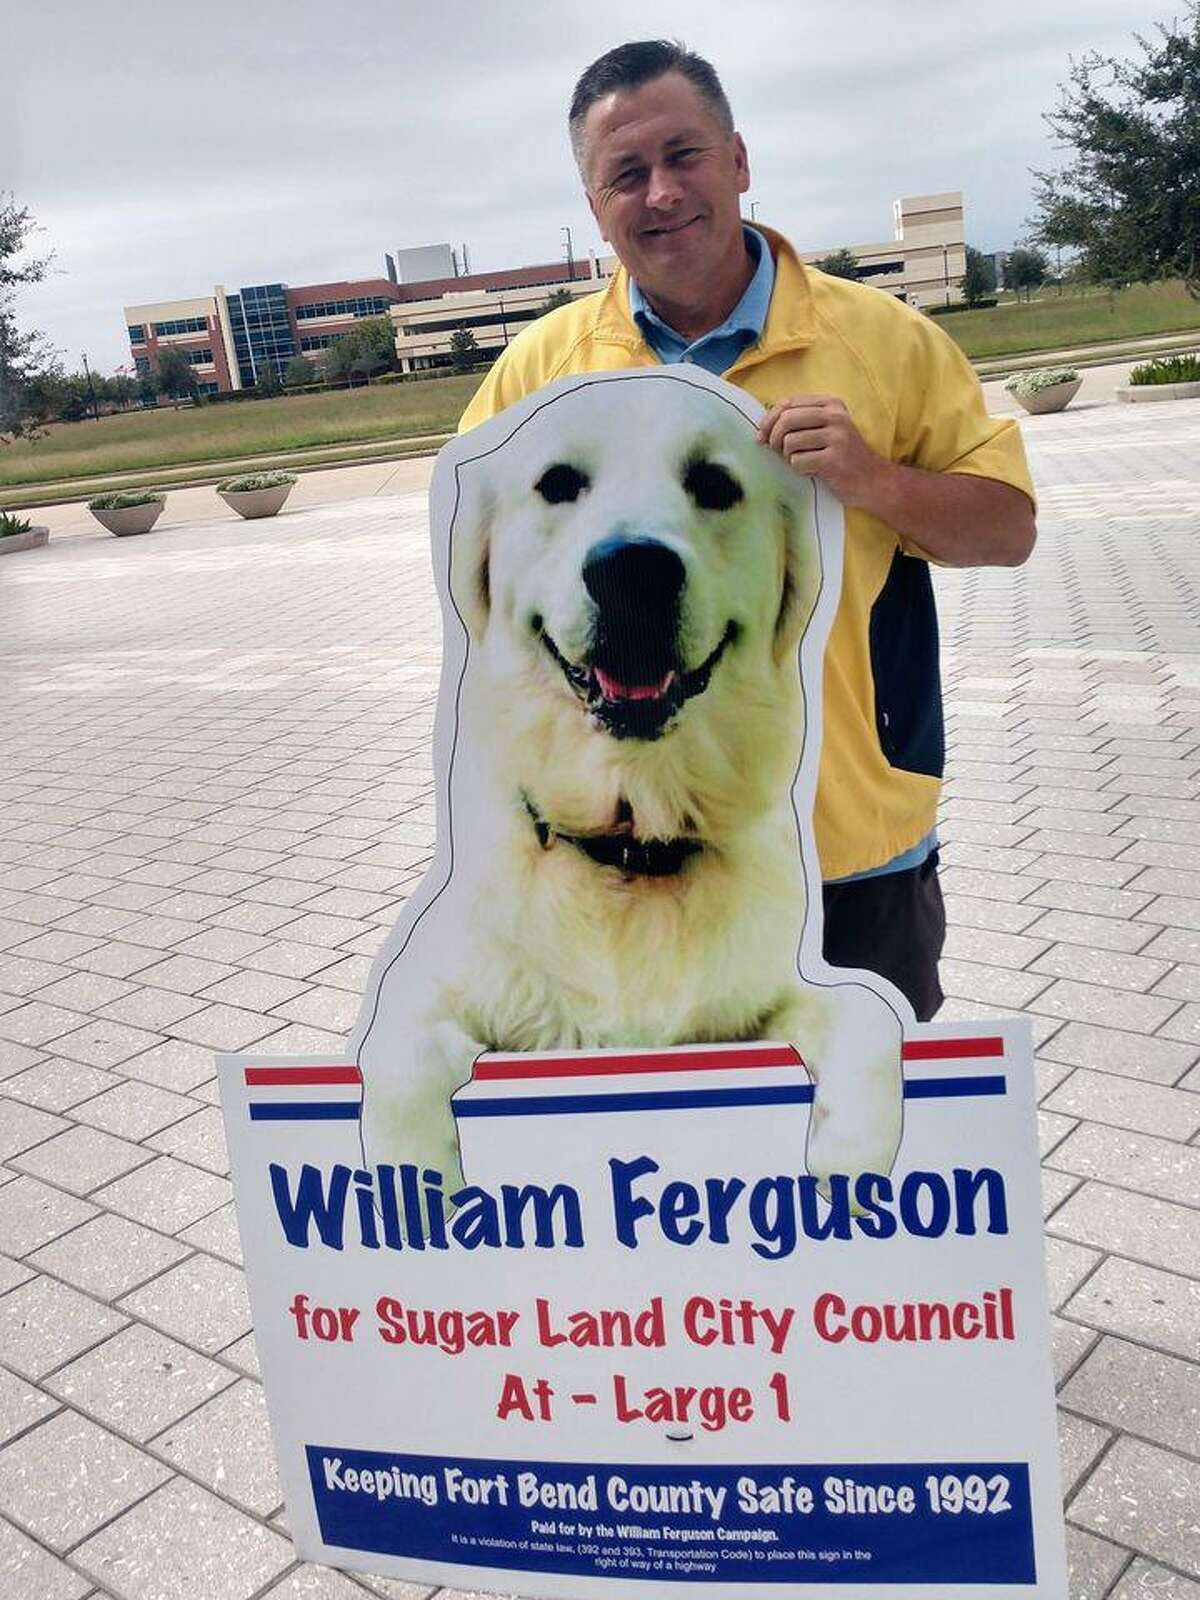 William Ferguson, entrepreneur and former police officer, has won the race for Sugar Land City Council At-Large Position 1